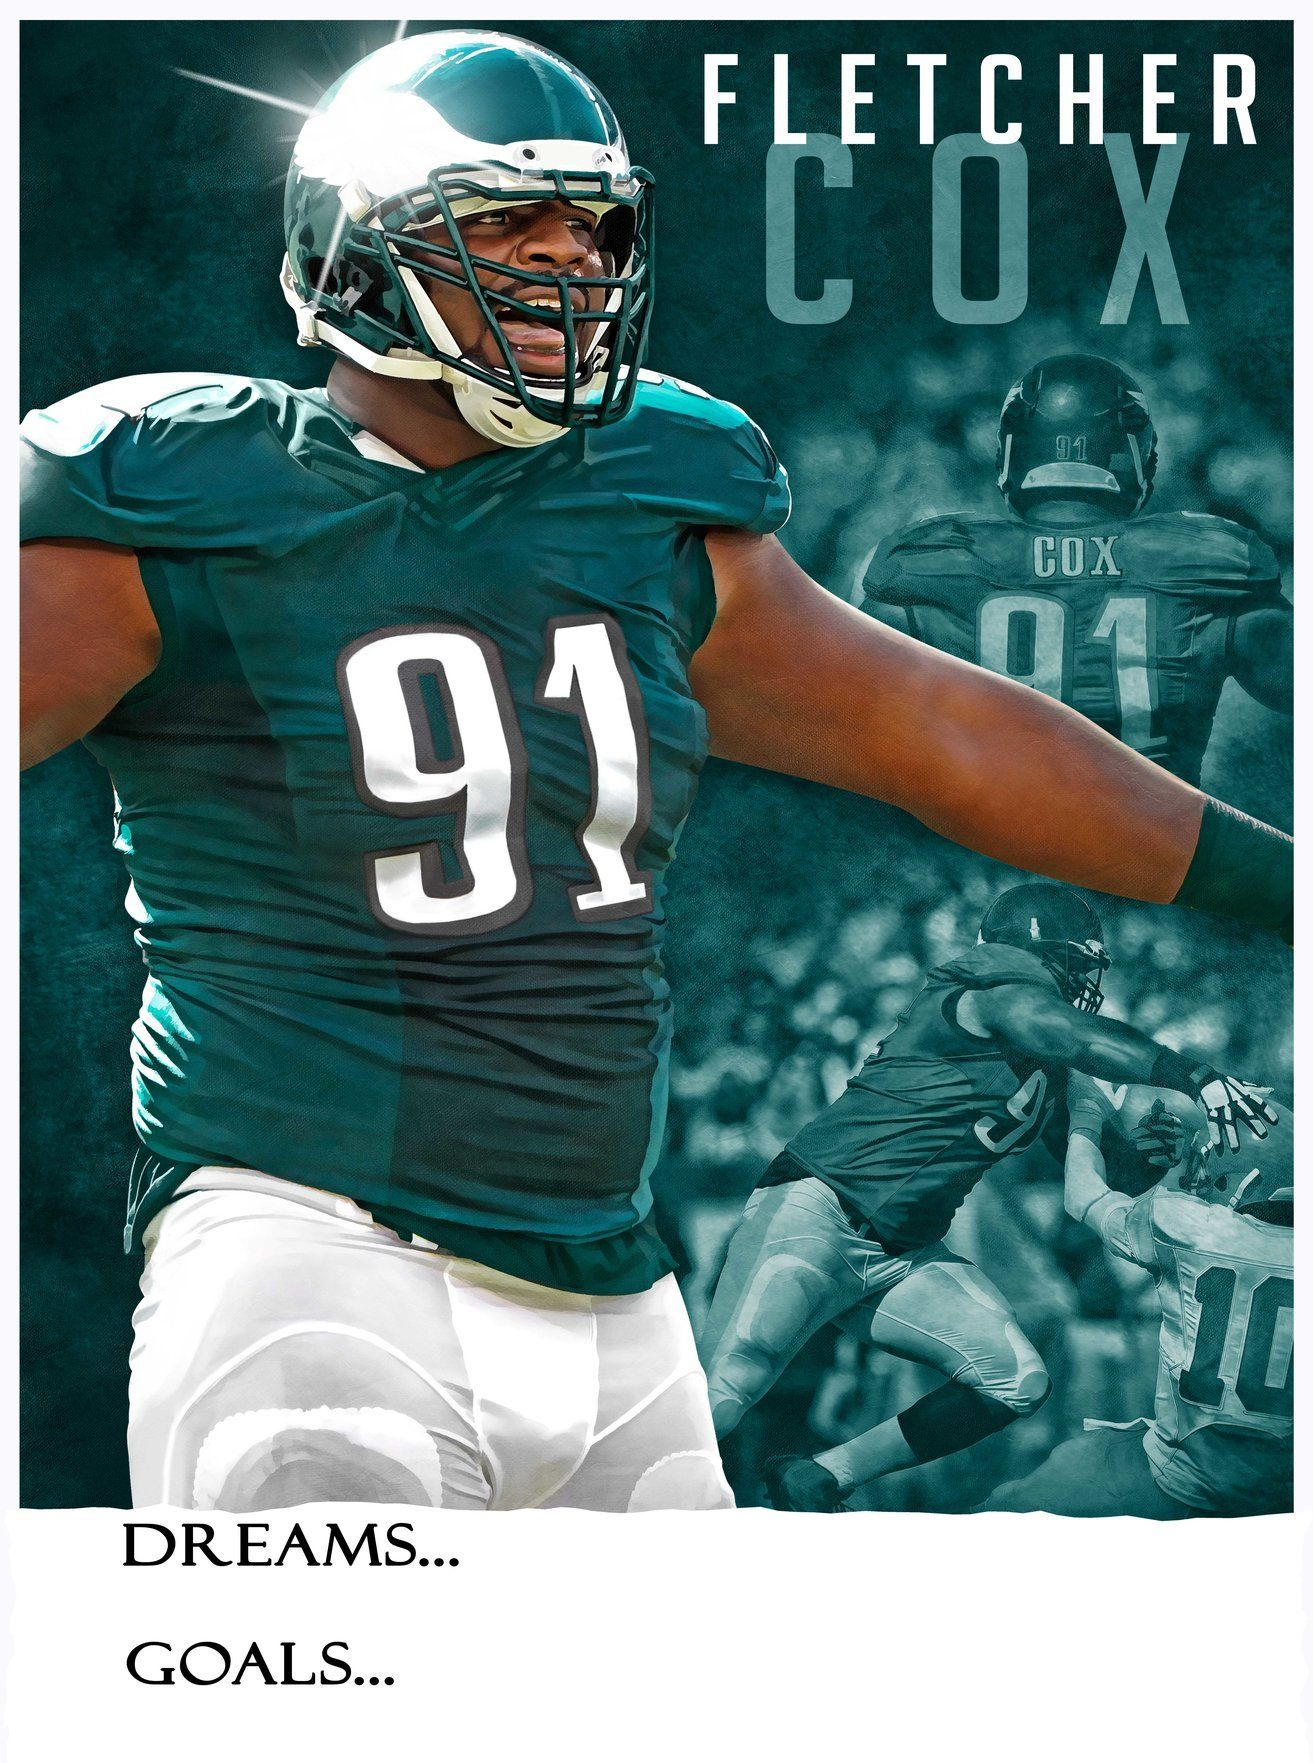 Philadelphia Eagles Fletcher Cox Dreams   Goals 11x15 Poster  6a5c51432